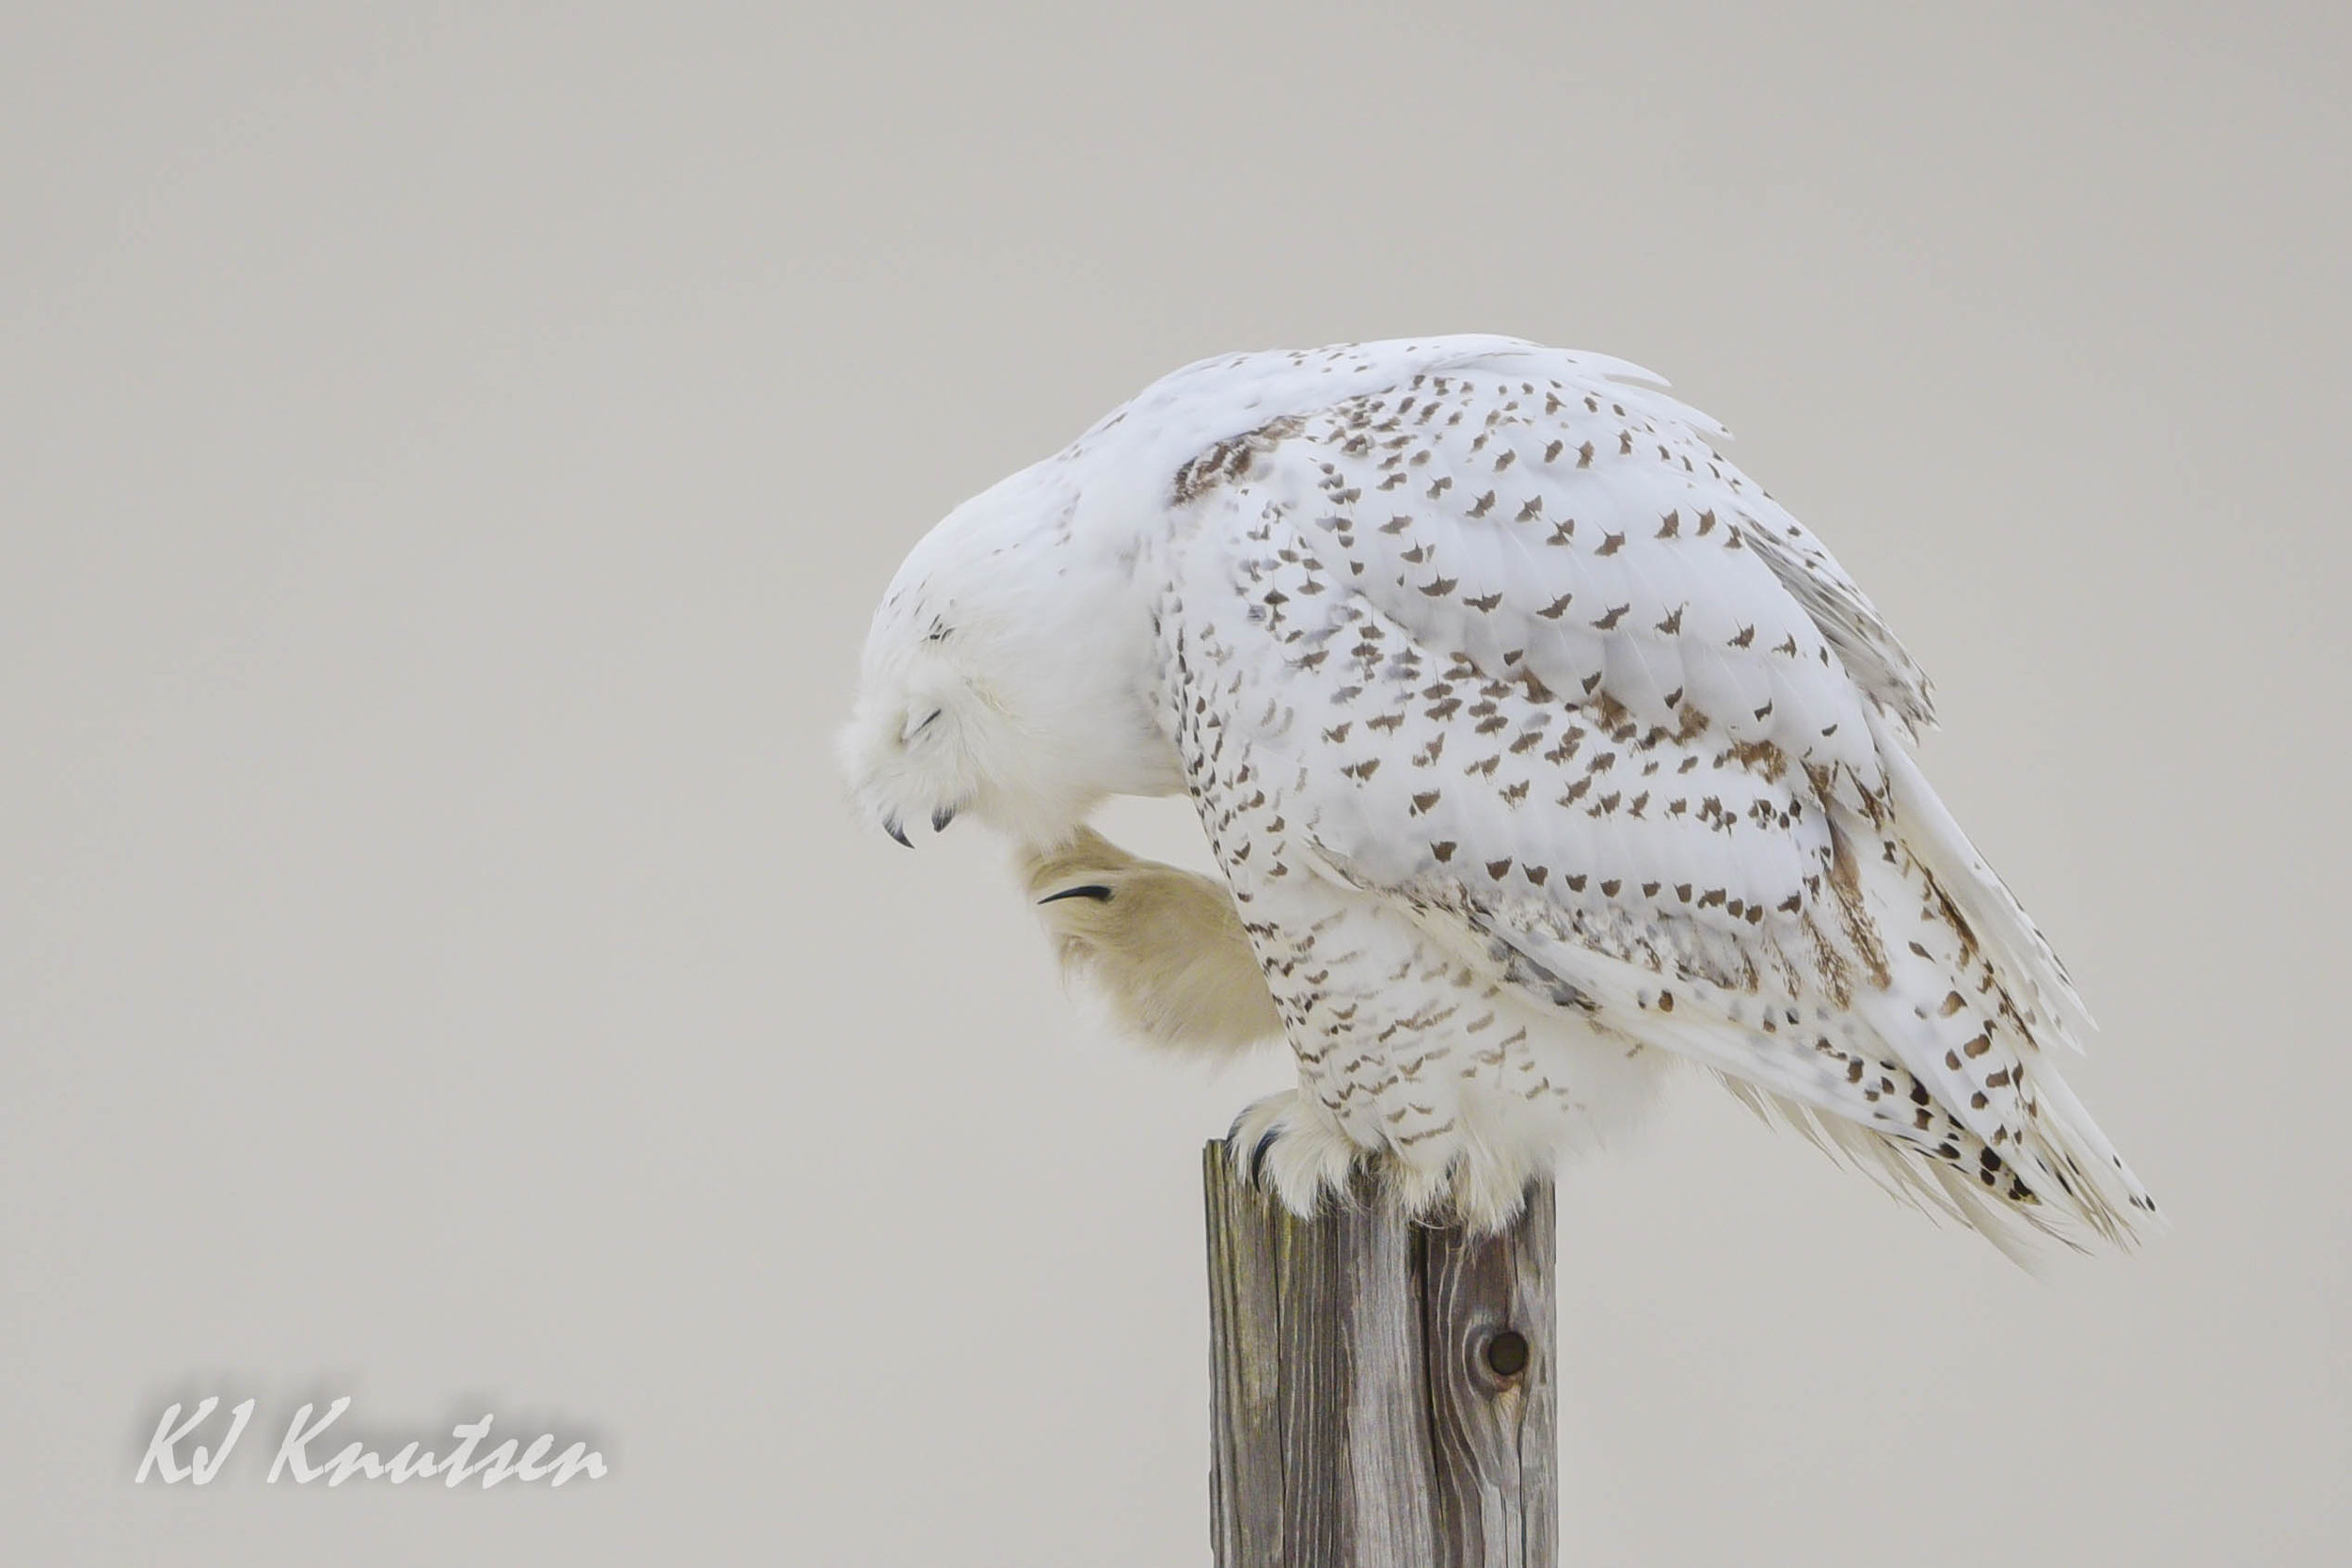 This Snowy Owl is oblivious to photographer Kevin Knutsen's presence nearby in his car blind. One can observe unique behaviors at a respectful distance, if the owl obliges.